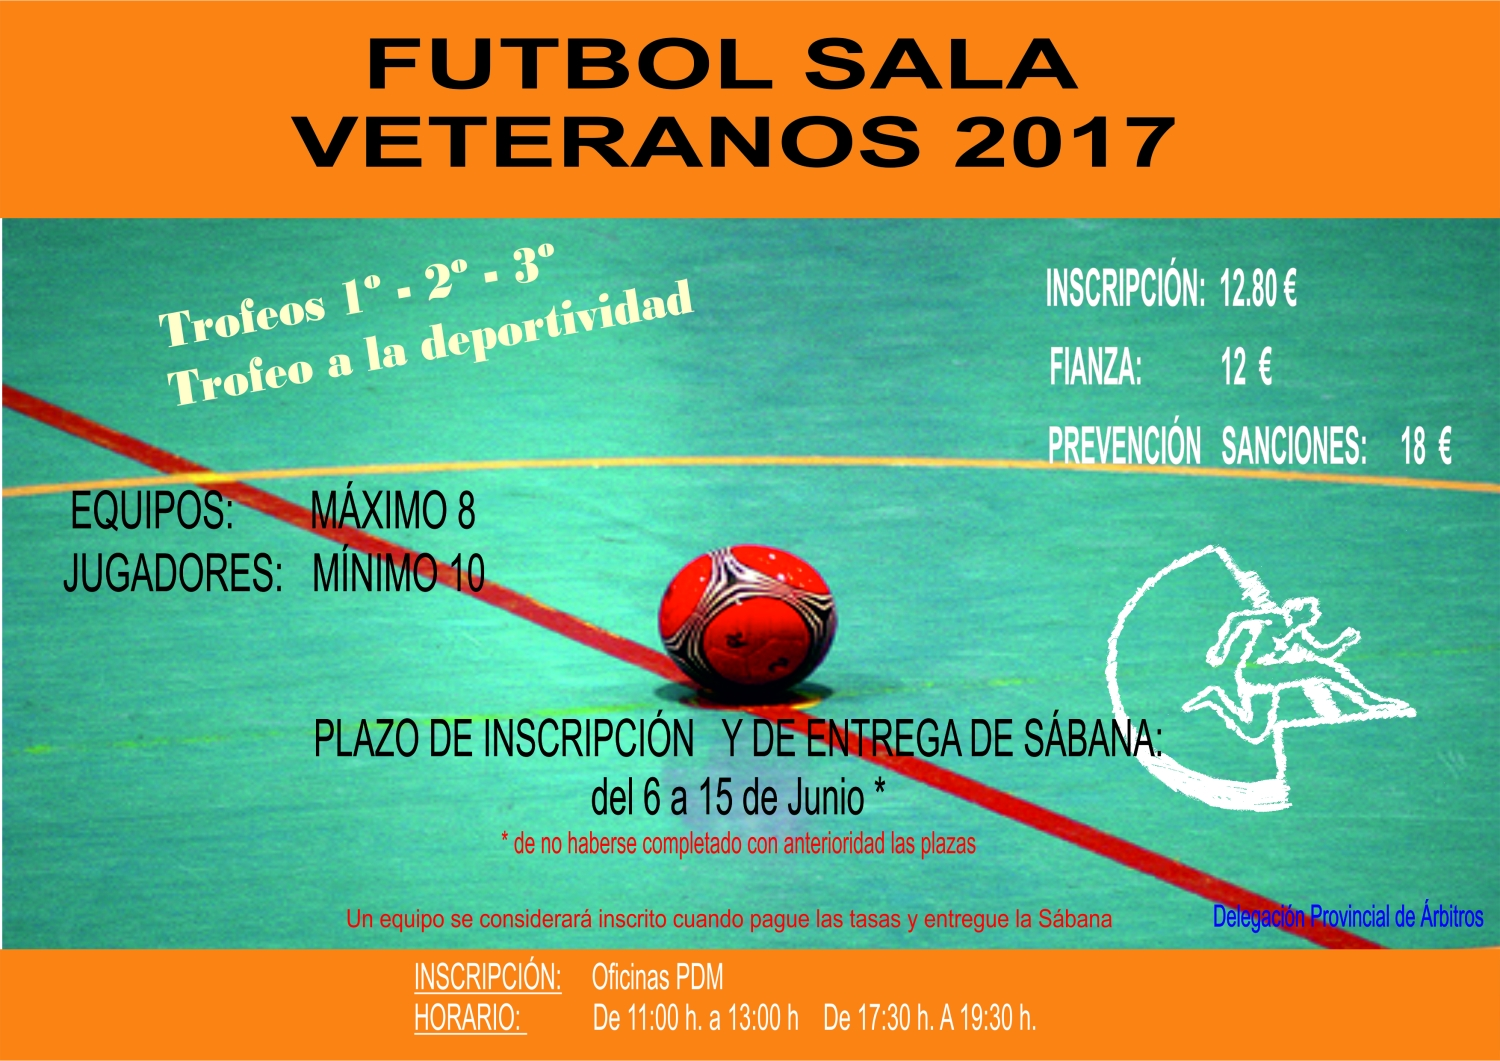 https://www.palmadelrio.es/sites/default/files/futbol_sala_veteranos_2017_jpeg.jpg